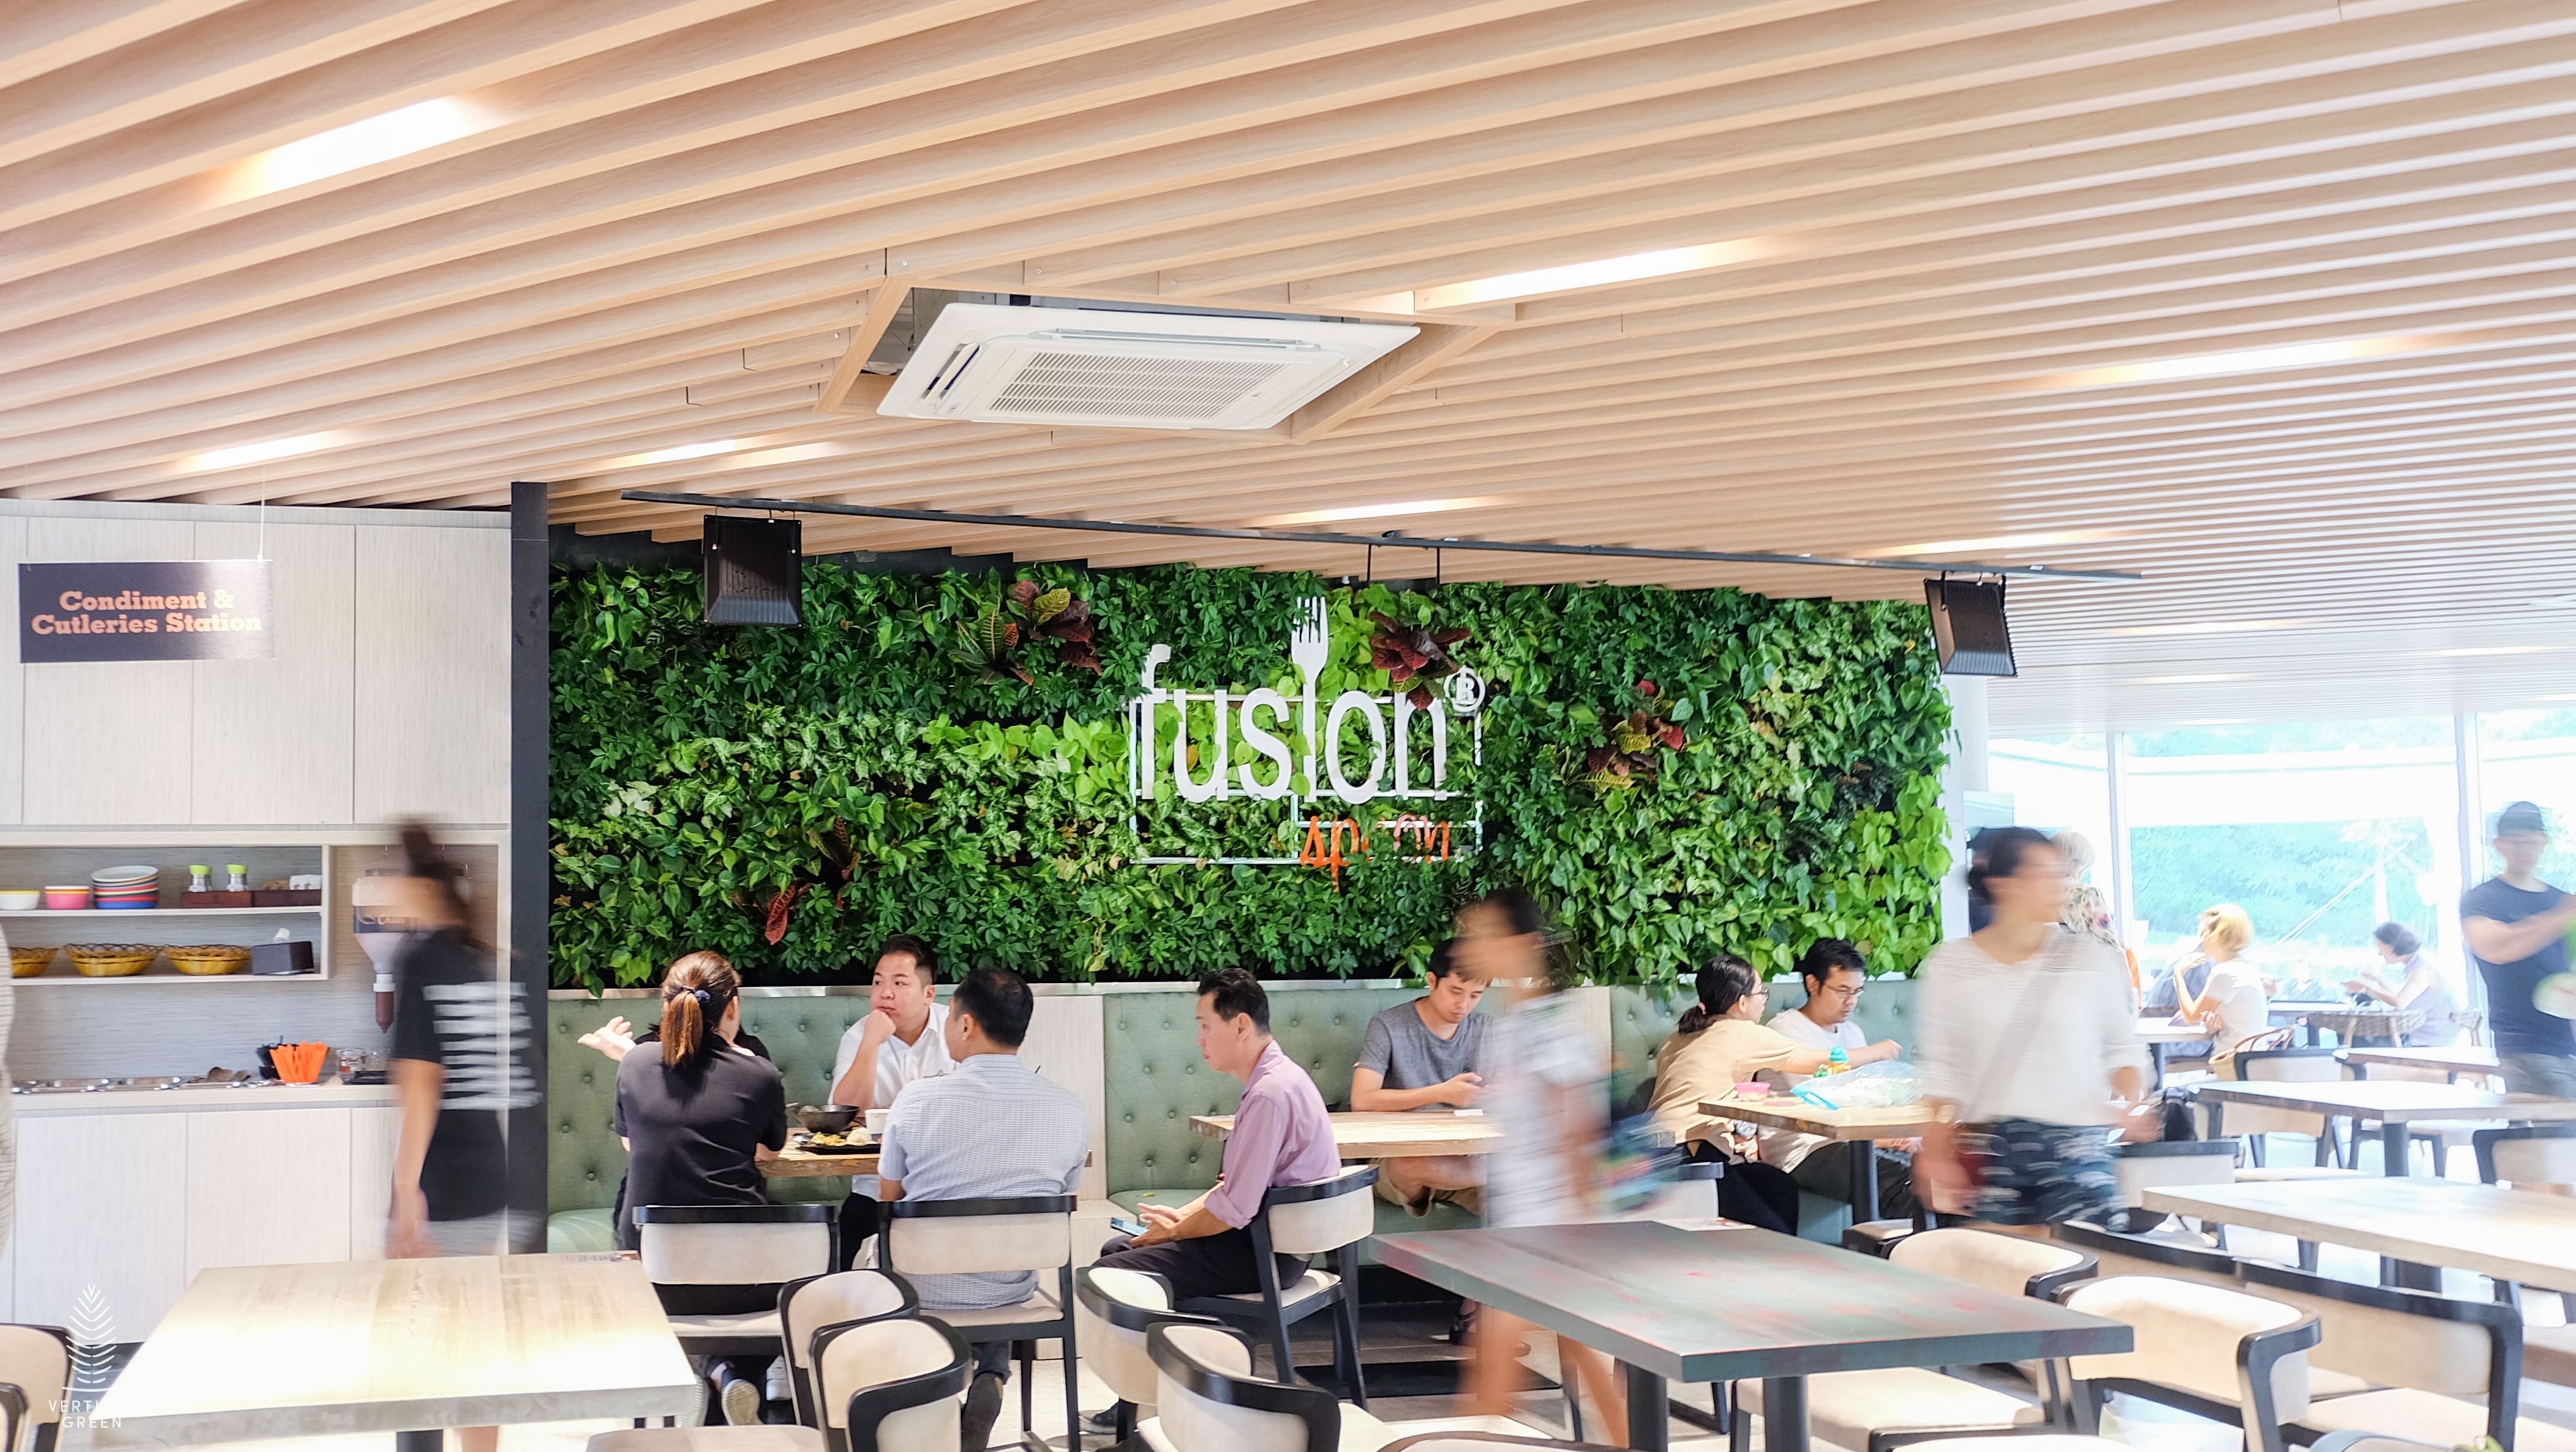 Fusion Spoon Jlg Singapore Restaurant In A Park Living Green Wall Green Wall Green Living